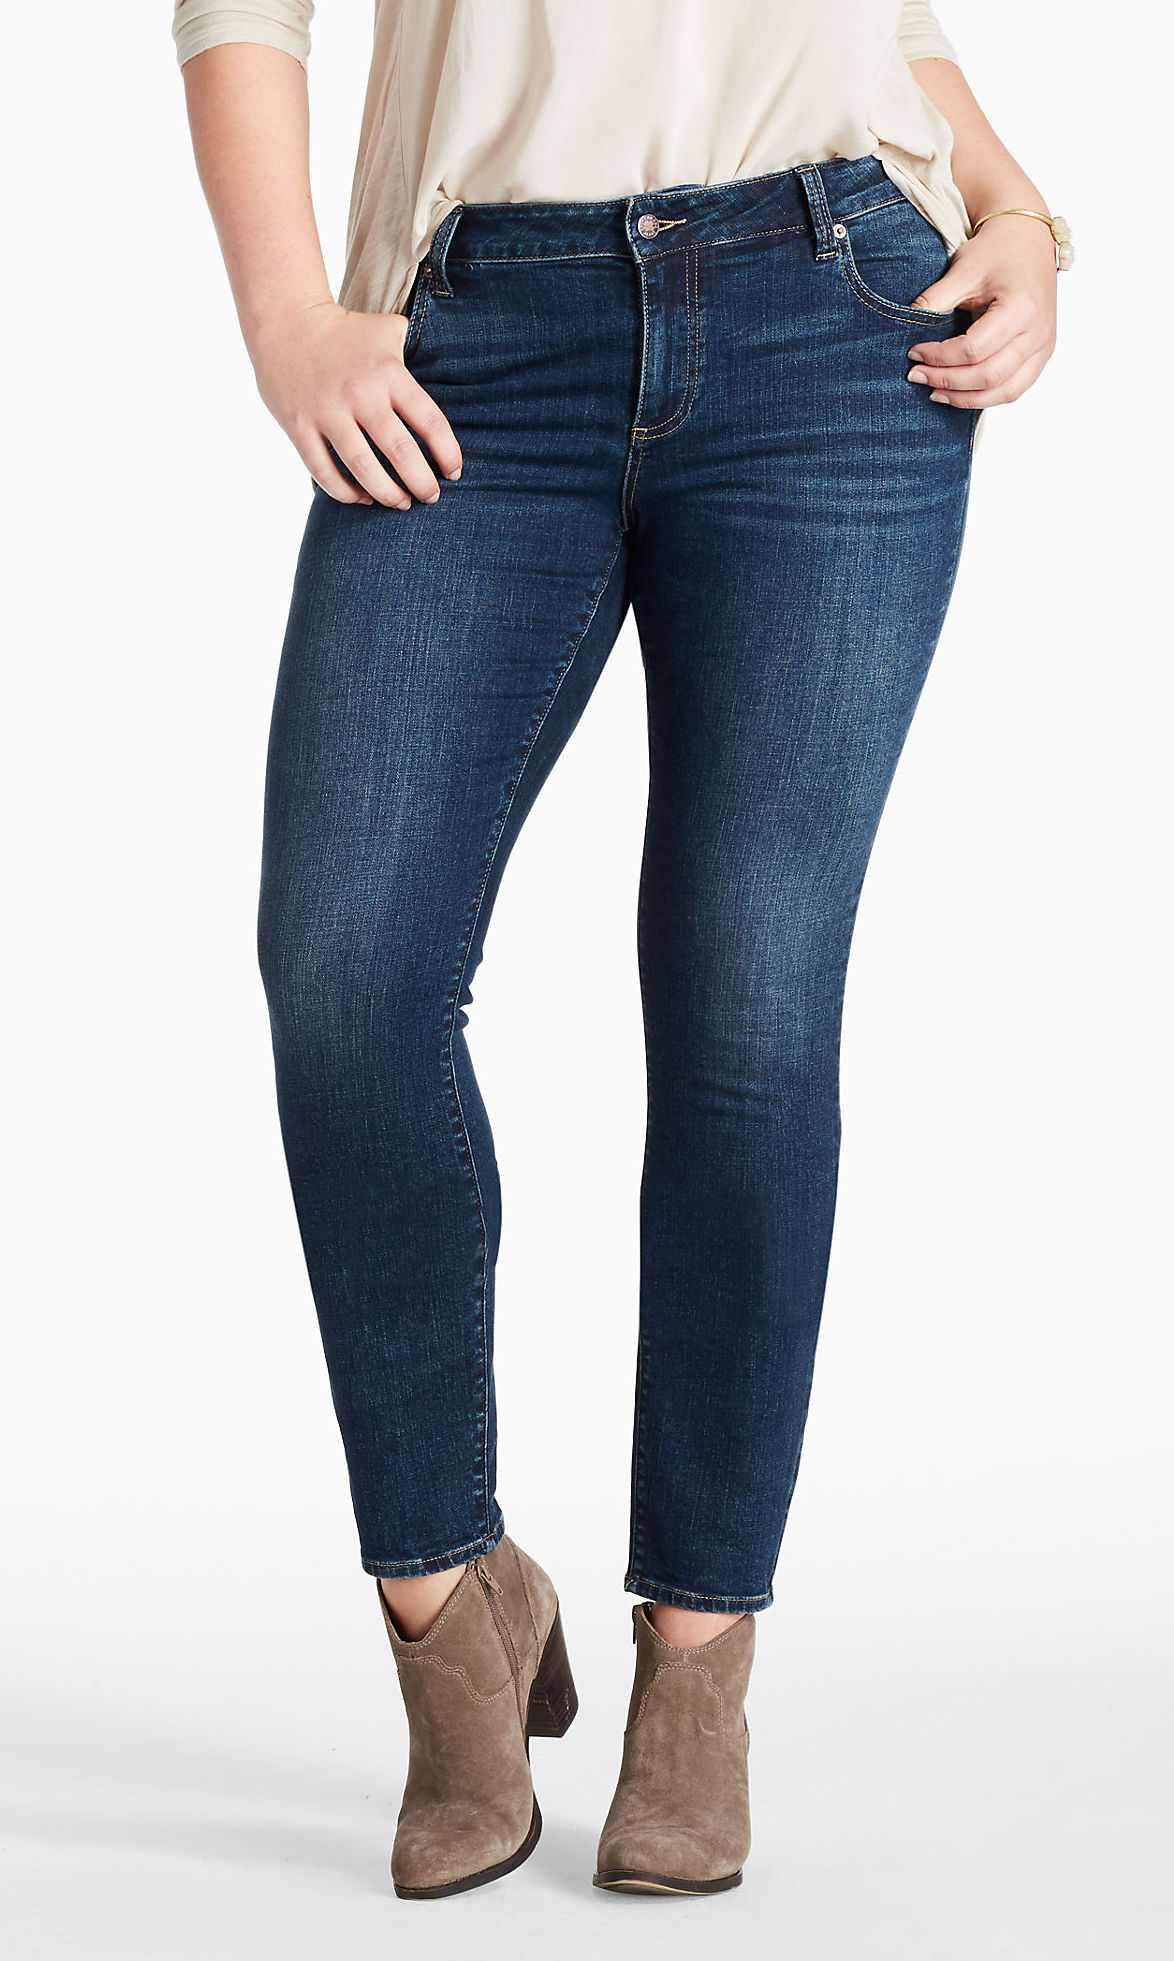 A Guide To The Best Jeans For Plus-Size Women  Instylecom-3307